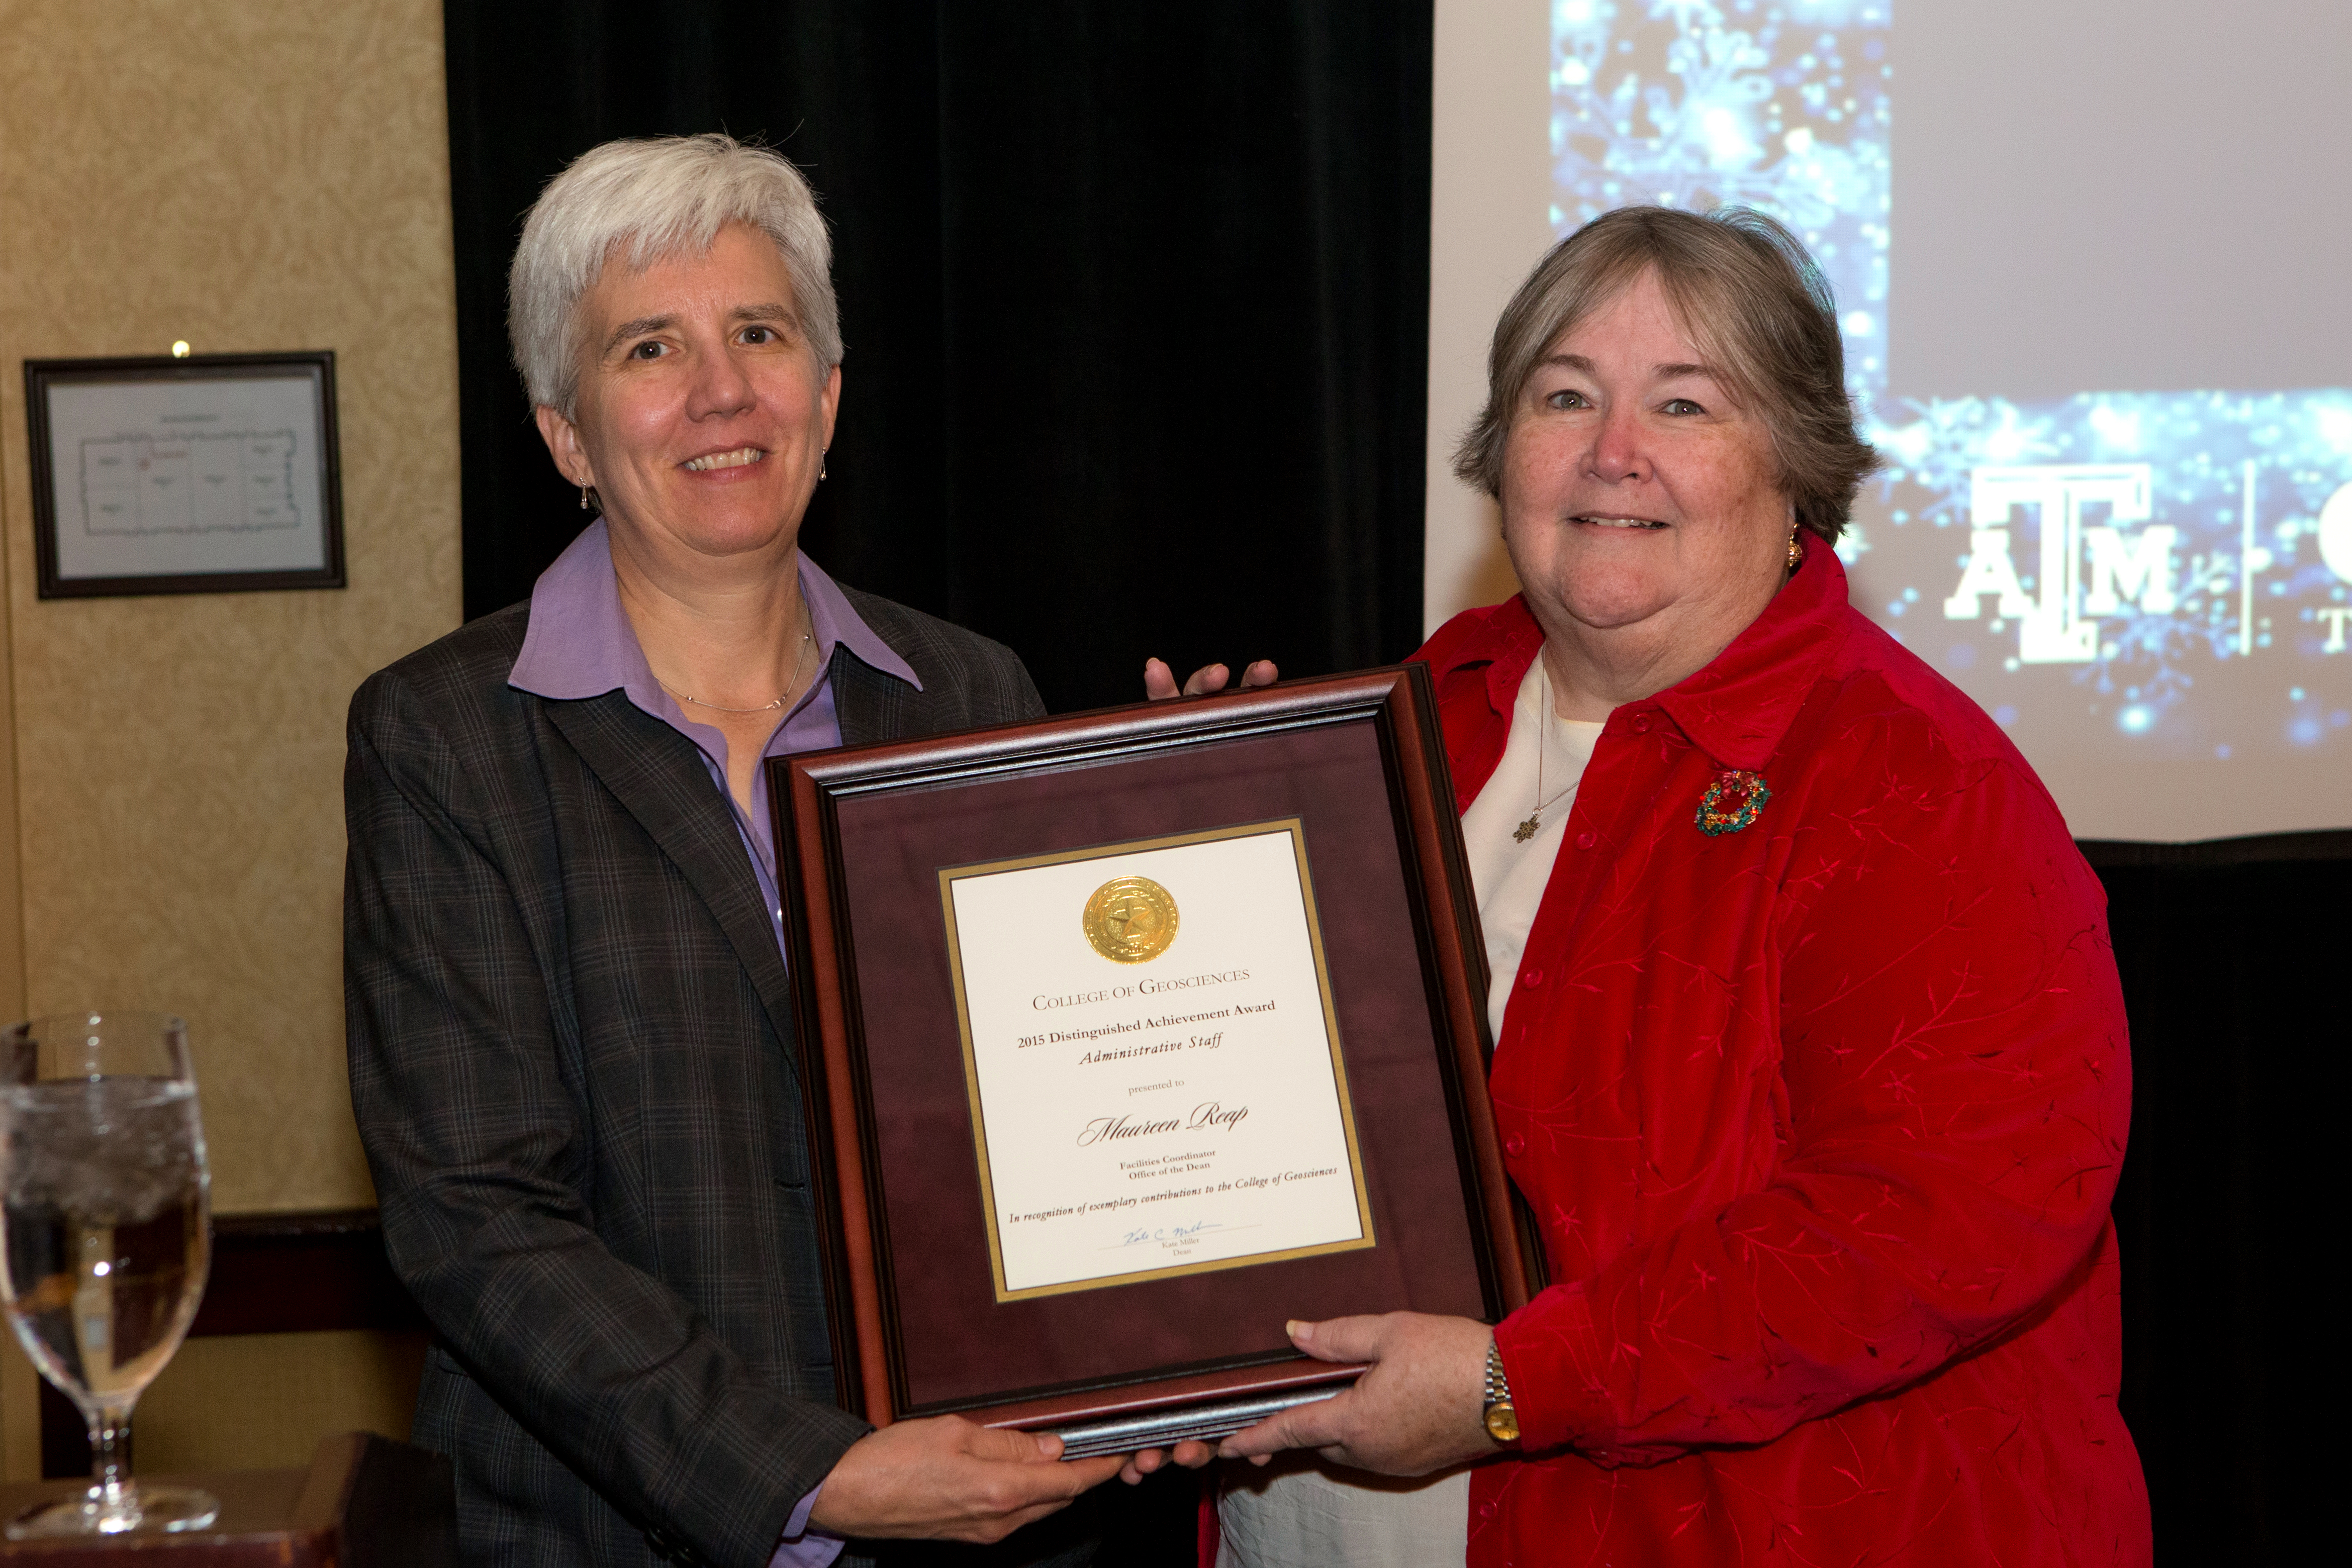 Facilities Director, Maureen Reap, retires from the College of Geosciences